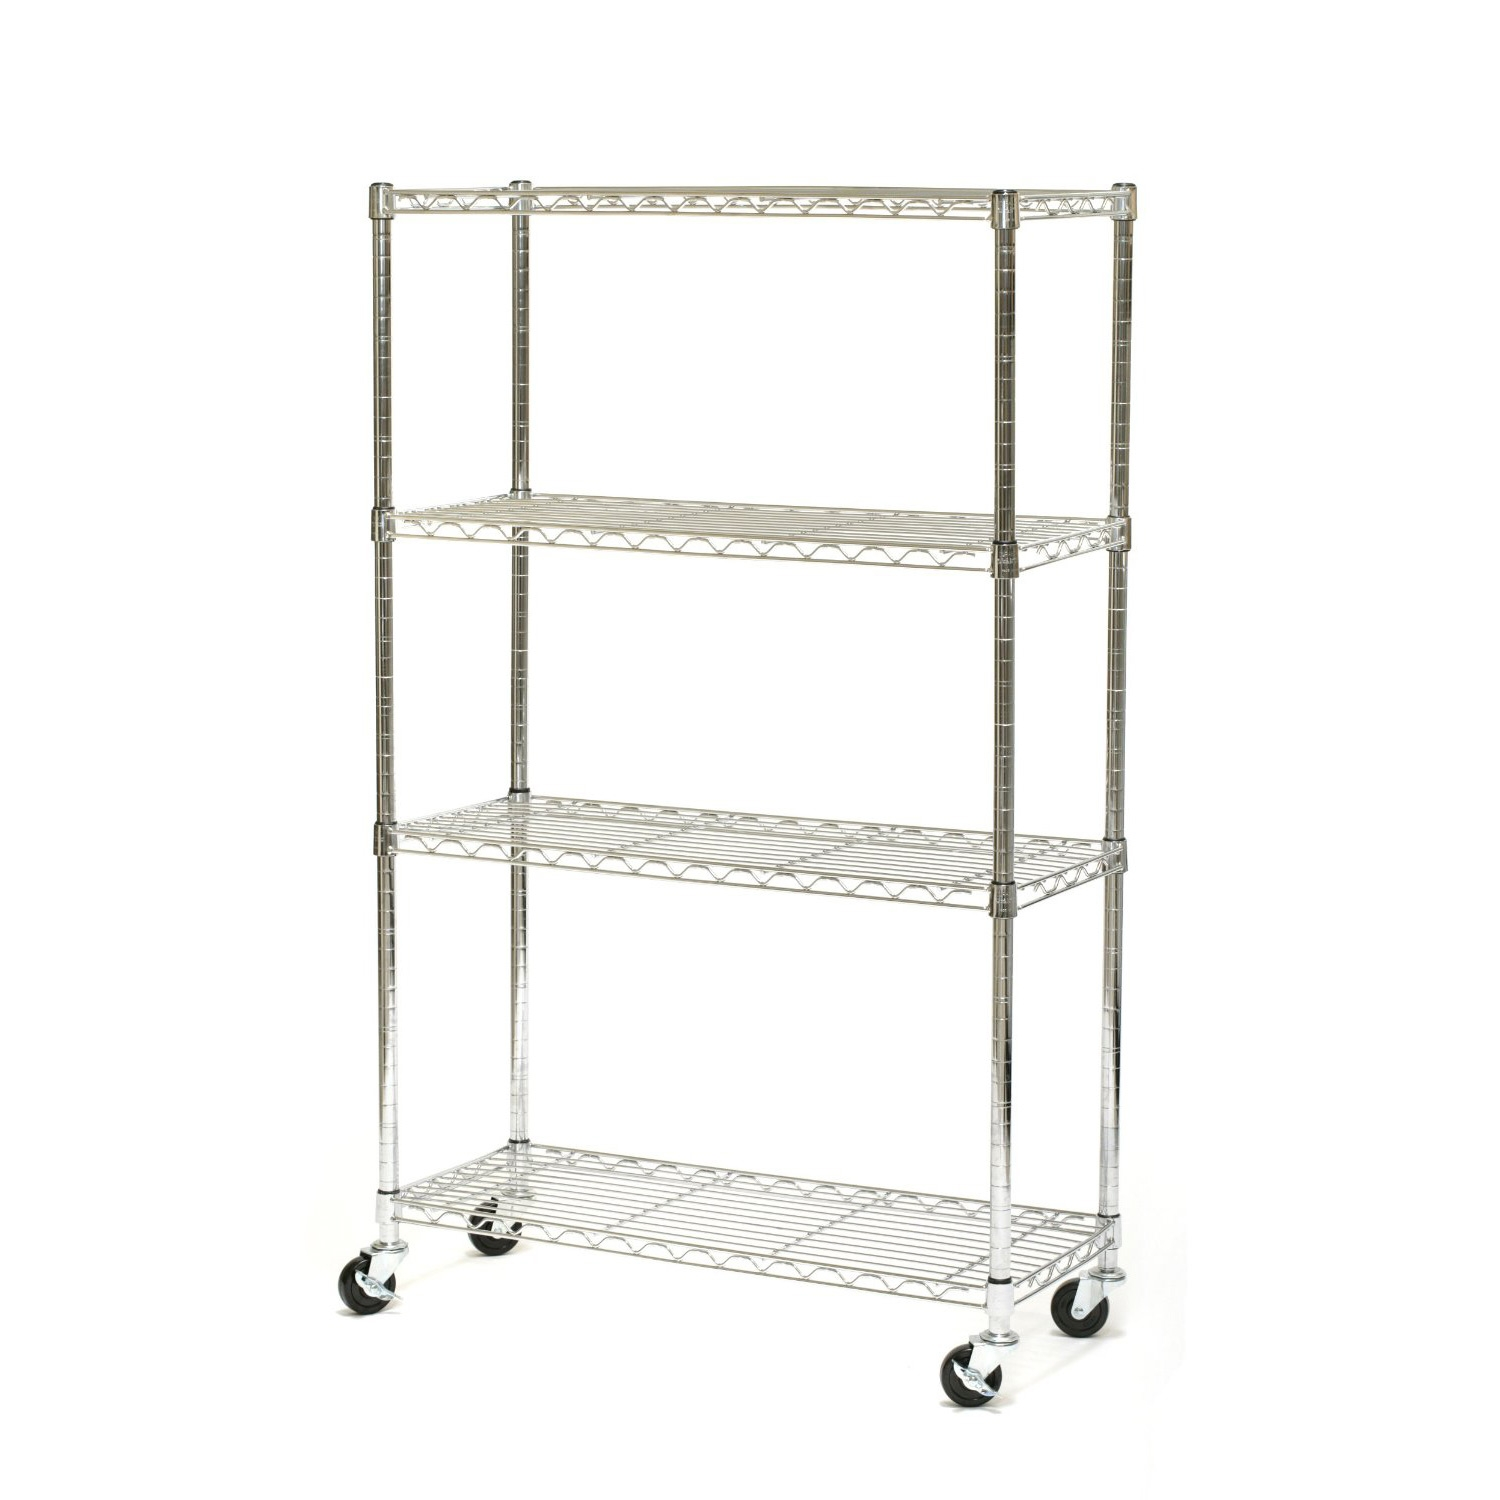 4-Shelf Storage Shelves Cart on Wheels in Chrome Metal, SC1454CW6601 :  This 4-Shelf Storage Shelves Cart on Wheels in Chrome Metal is the perfect storage system for your home, office, or warehouse. Each shelf can hold up to 500-Pound evenly distributed. No tools required; Simple setup; Shelf Capacity: 350-Pound per shelf.